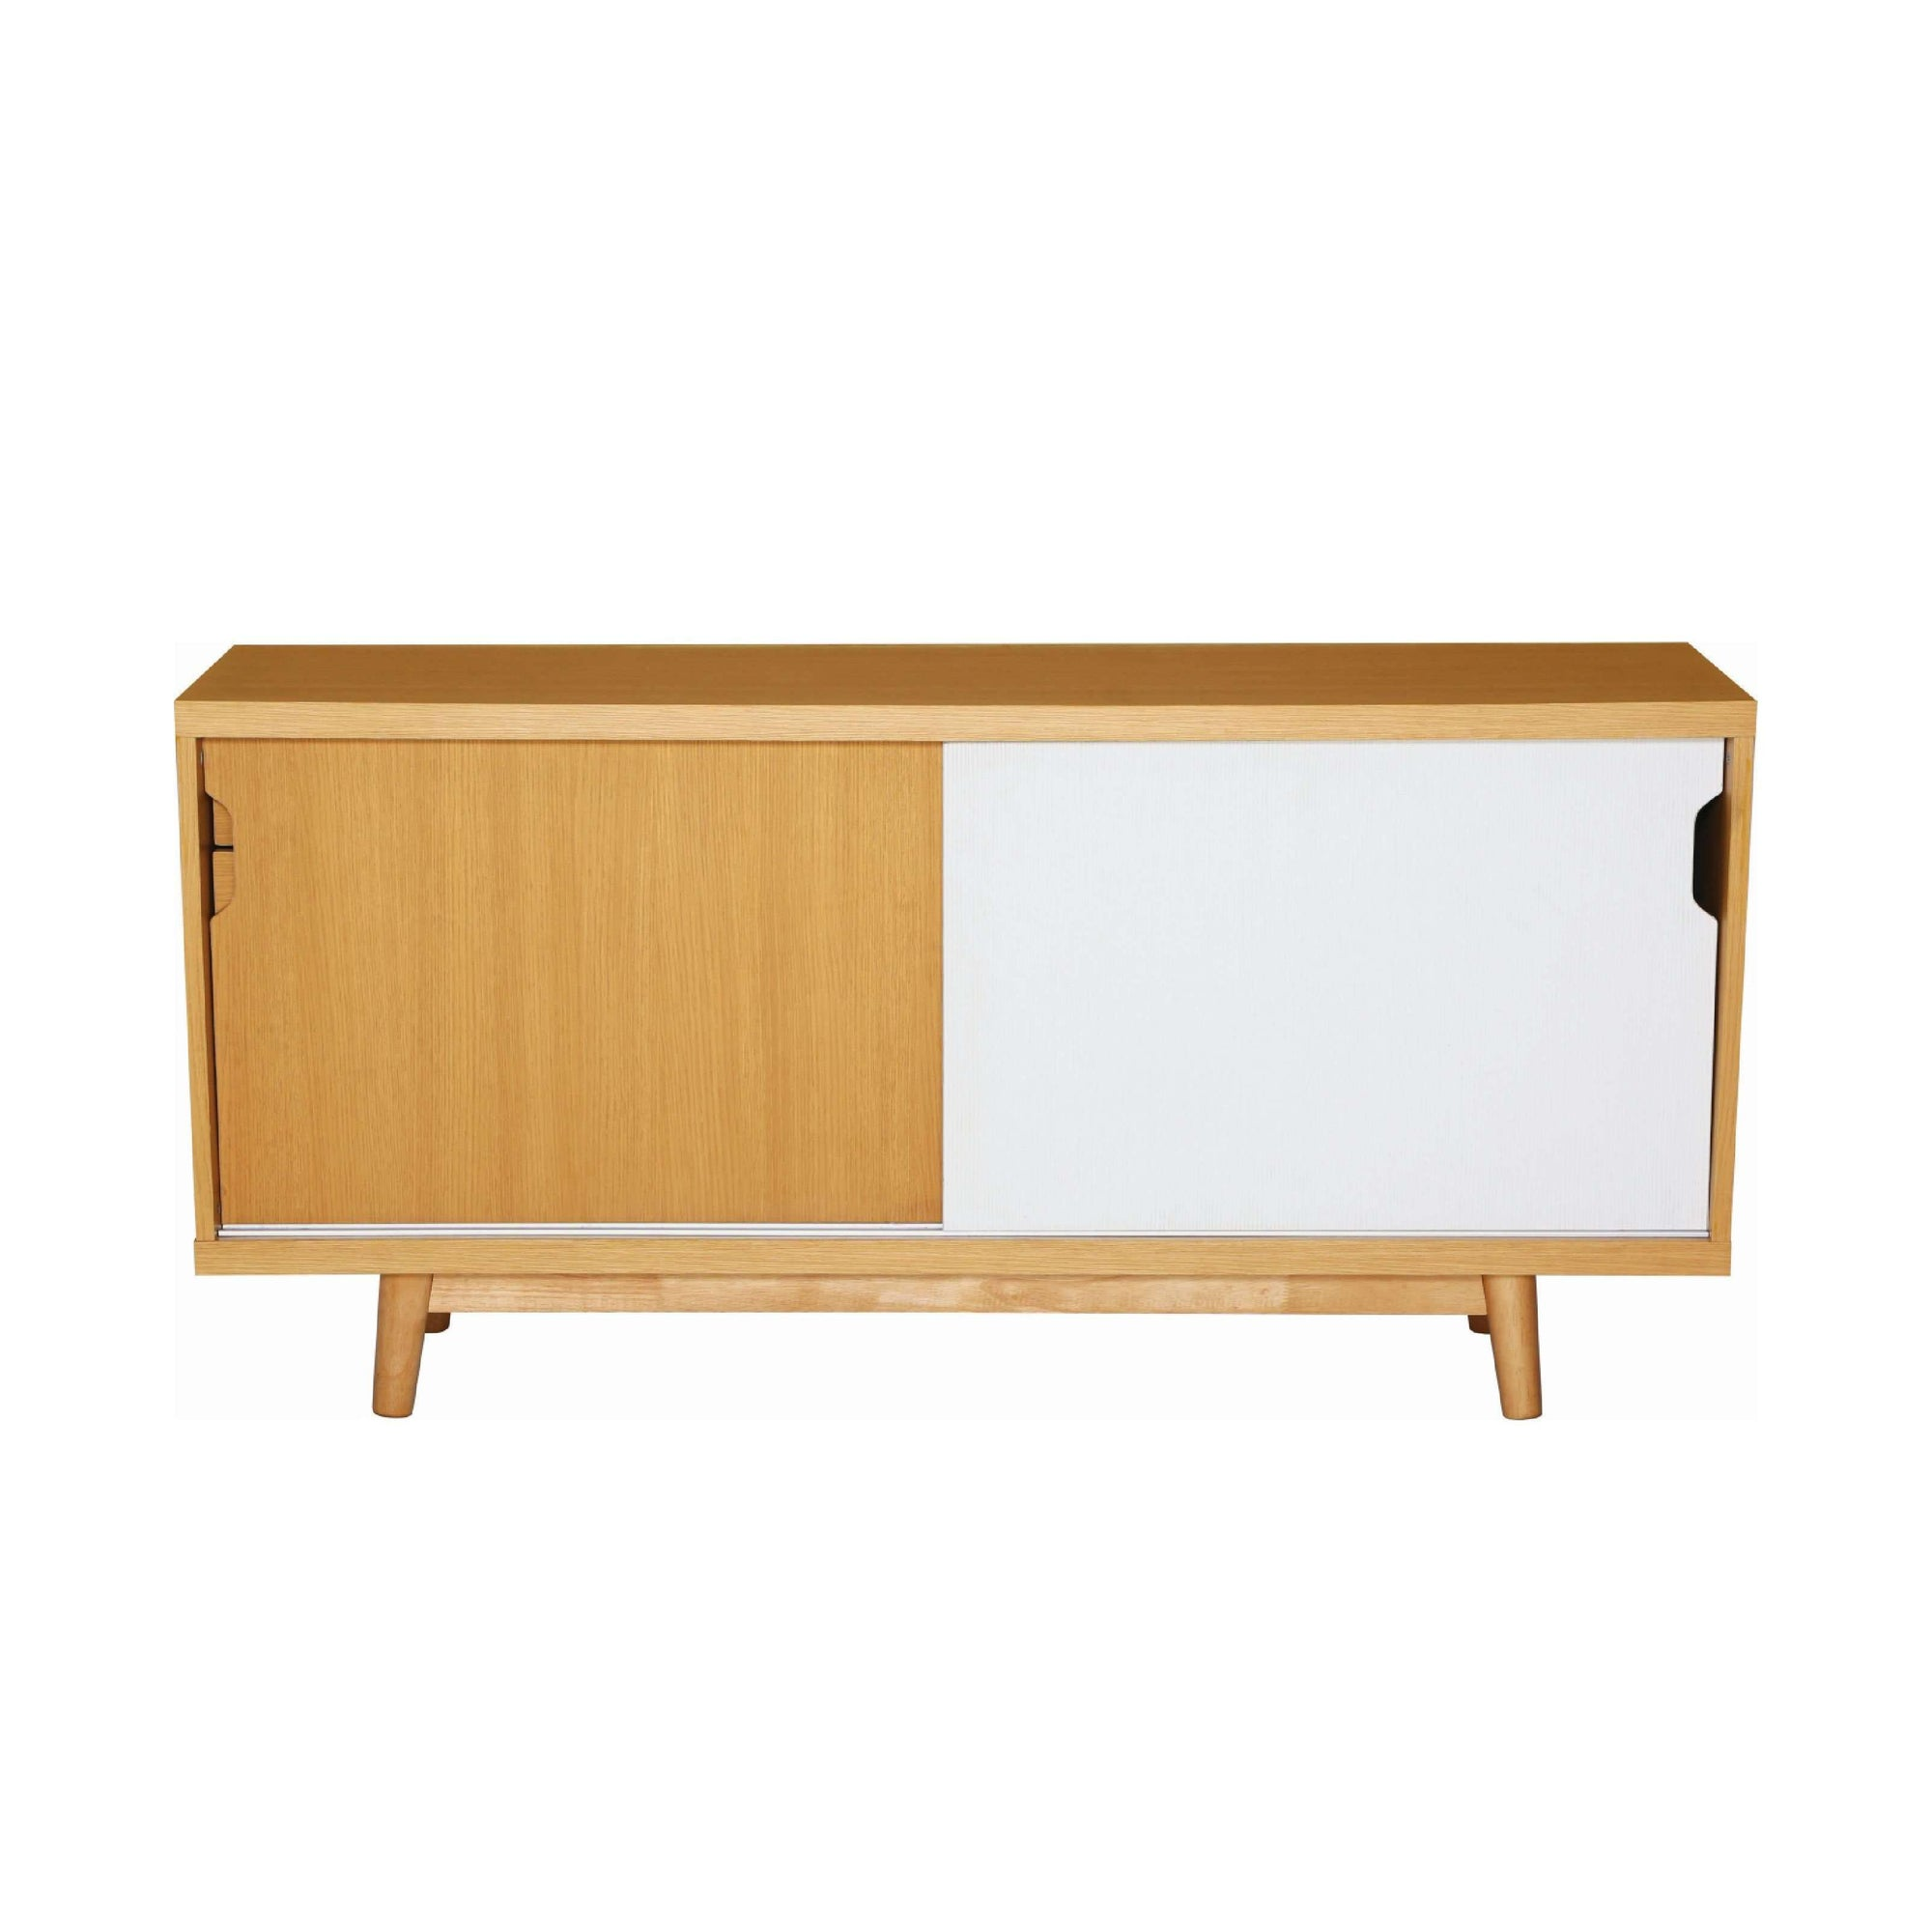 ANAS Sideboard On Natural Colour Body, White Laminate And Oak Laminate Door